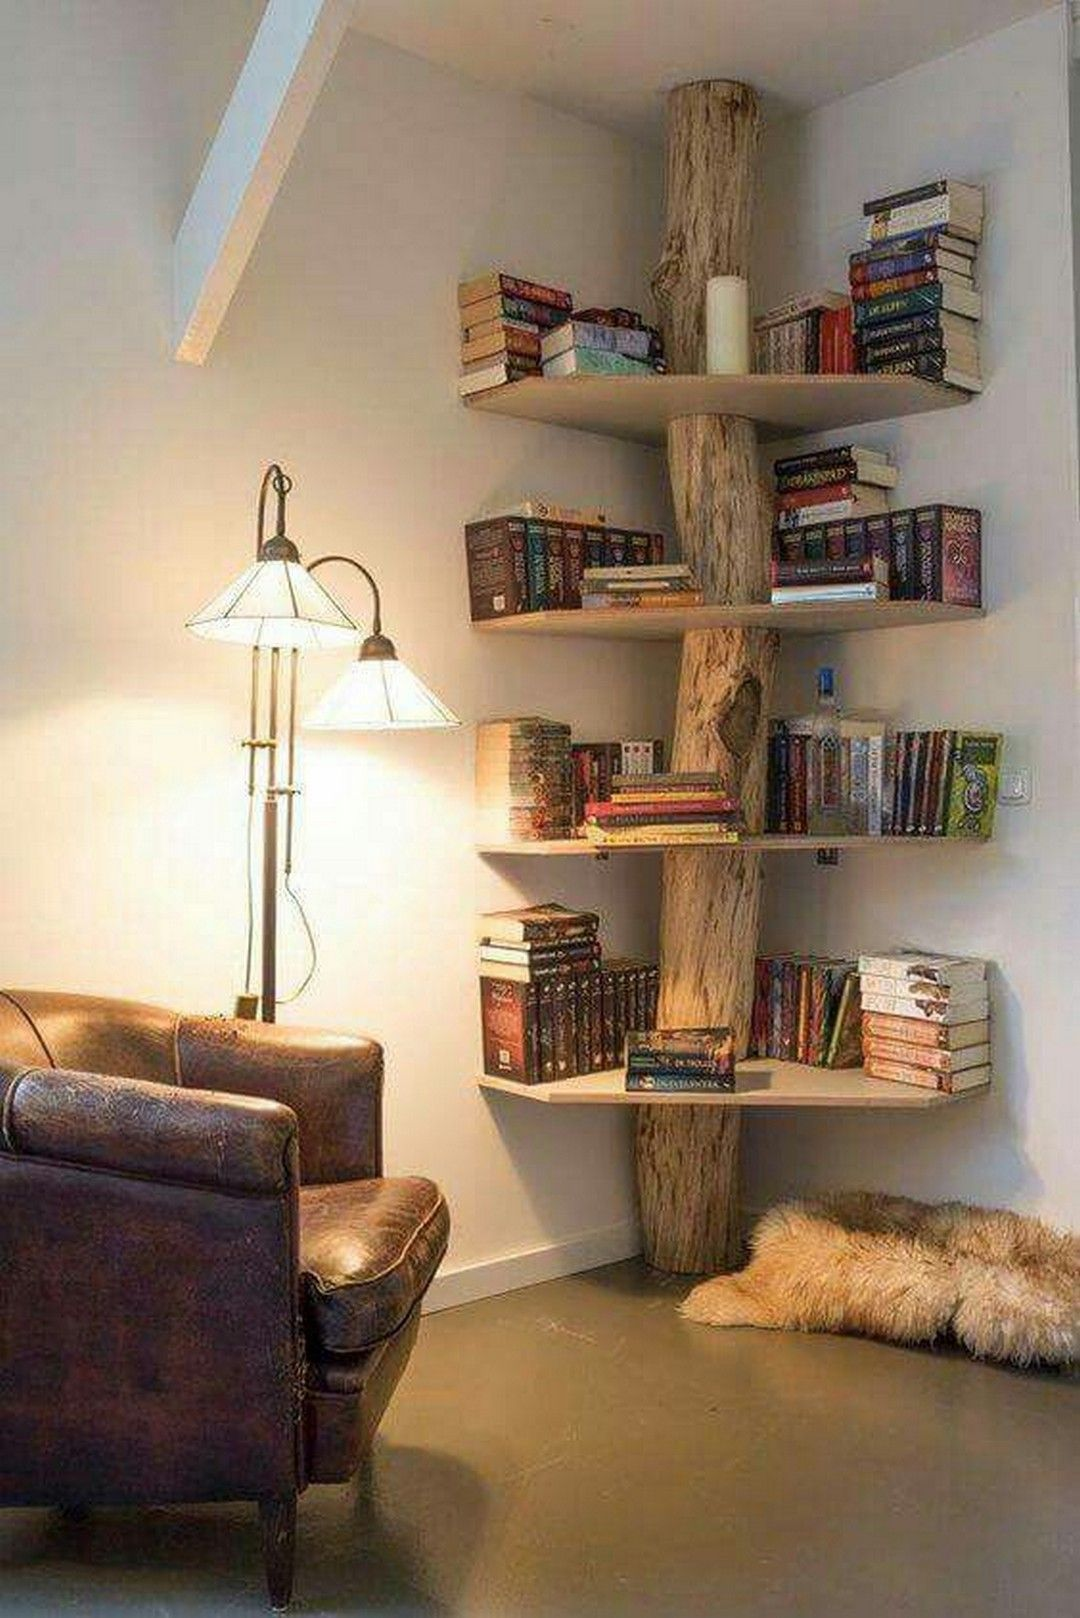 cool 122 Cheap  Easy and Simple DIY Rustic Home Decor Ideas https     cool 122 Cheap  Easy and Simple DIY Rustic Home Decor Ideas  https   www architecturehd com 2017 05 22 122 cheap easy simple diy rustic  home decor ideas